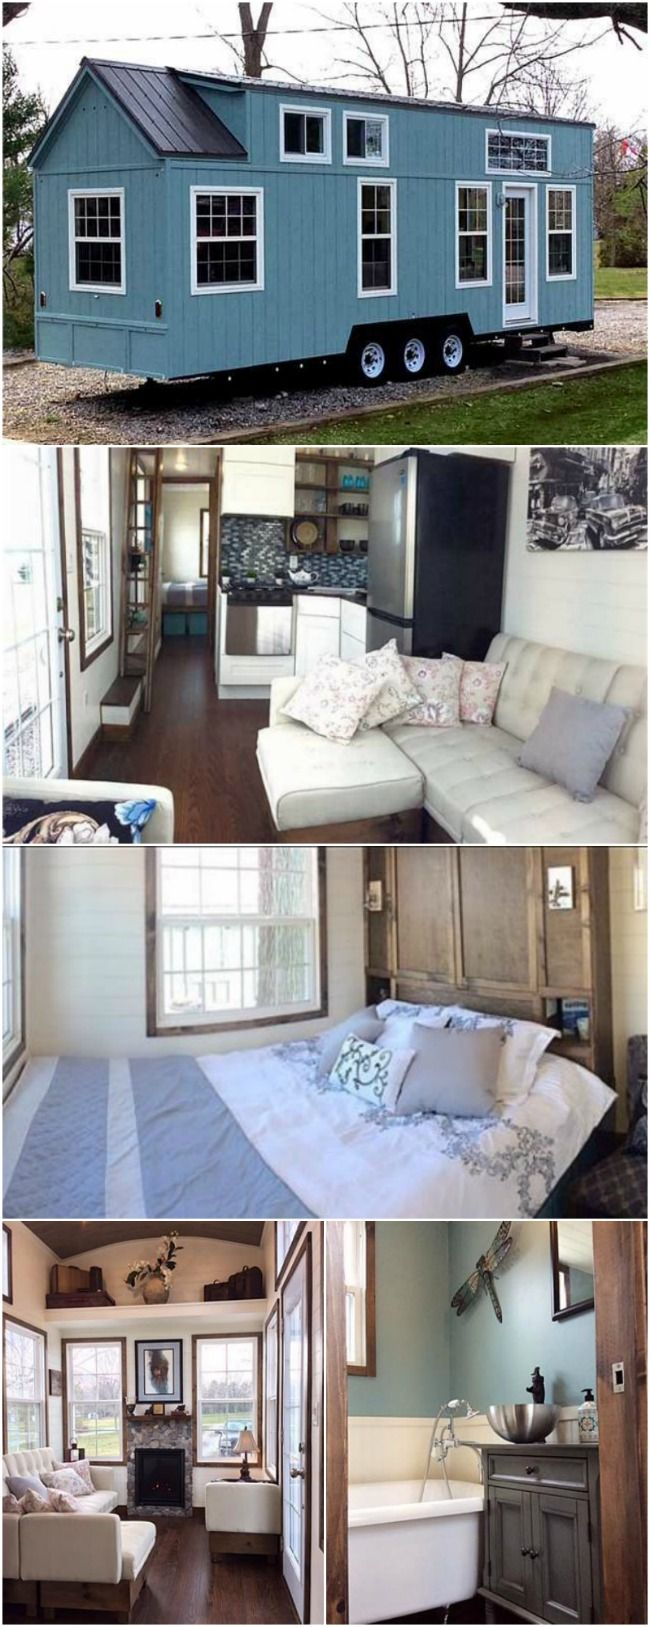 Luxurious And Spacious Tiny House On Wheels For Sale For 89 500 Tiny House On Wheels Tiny House Plans Tiny House Inspiration